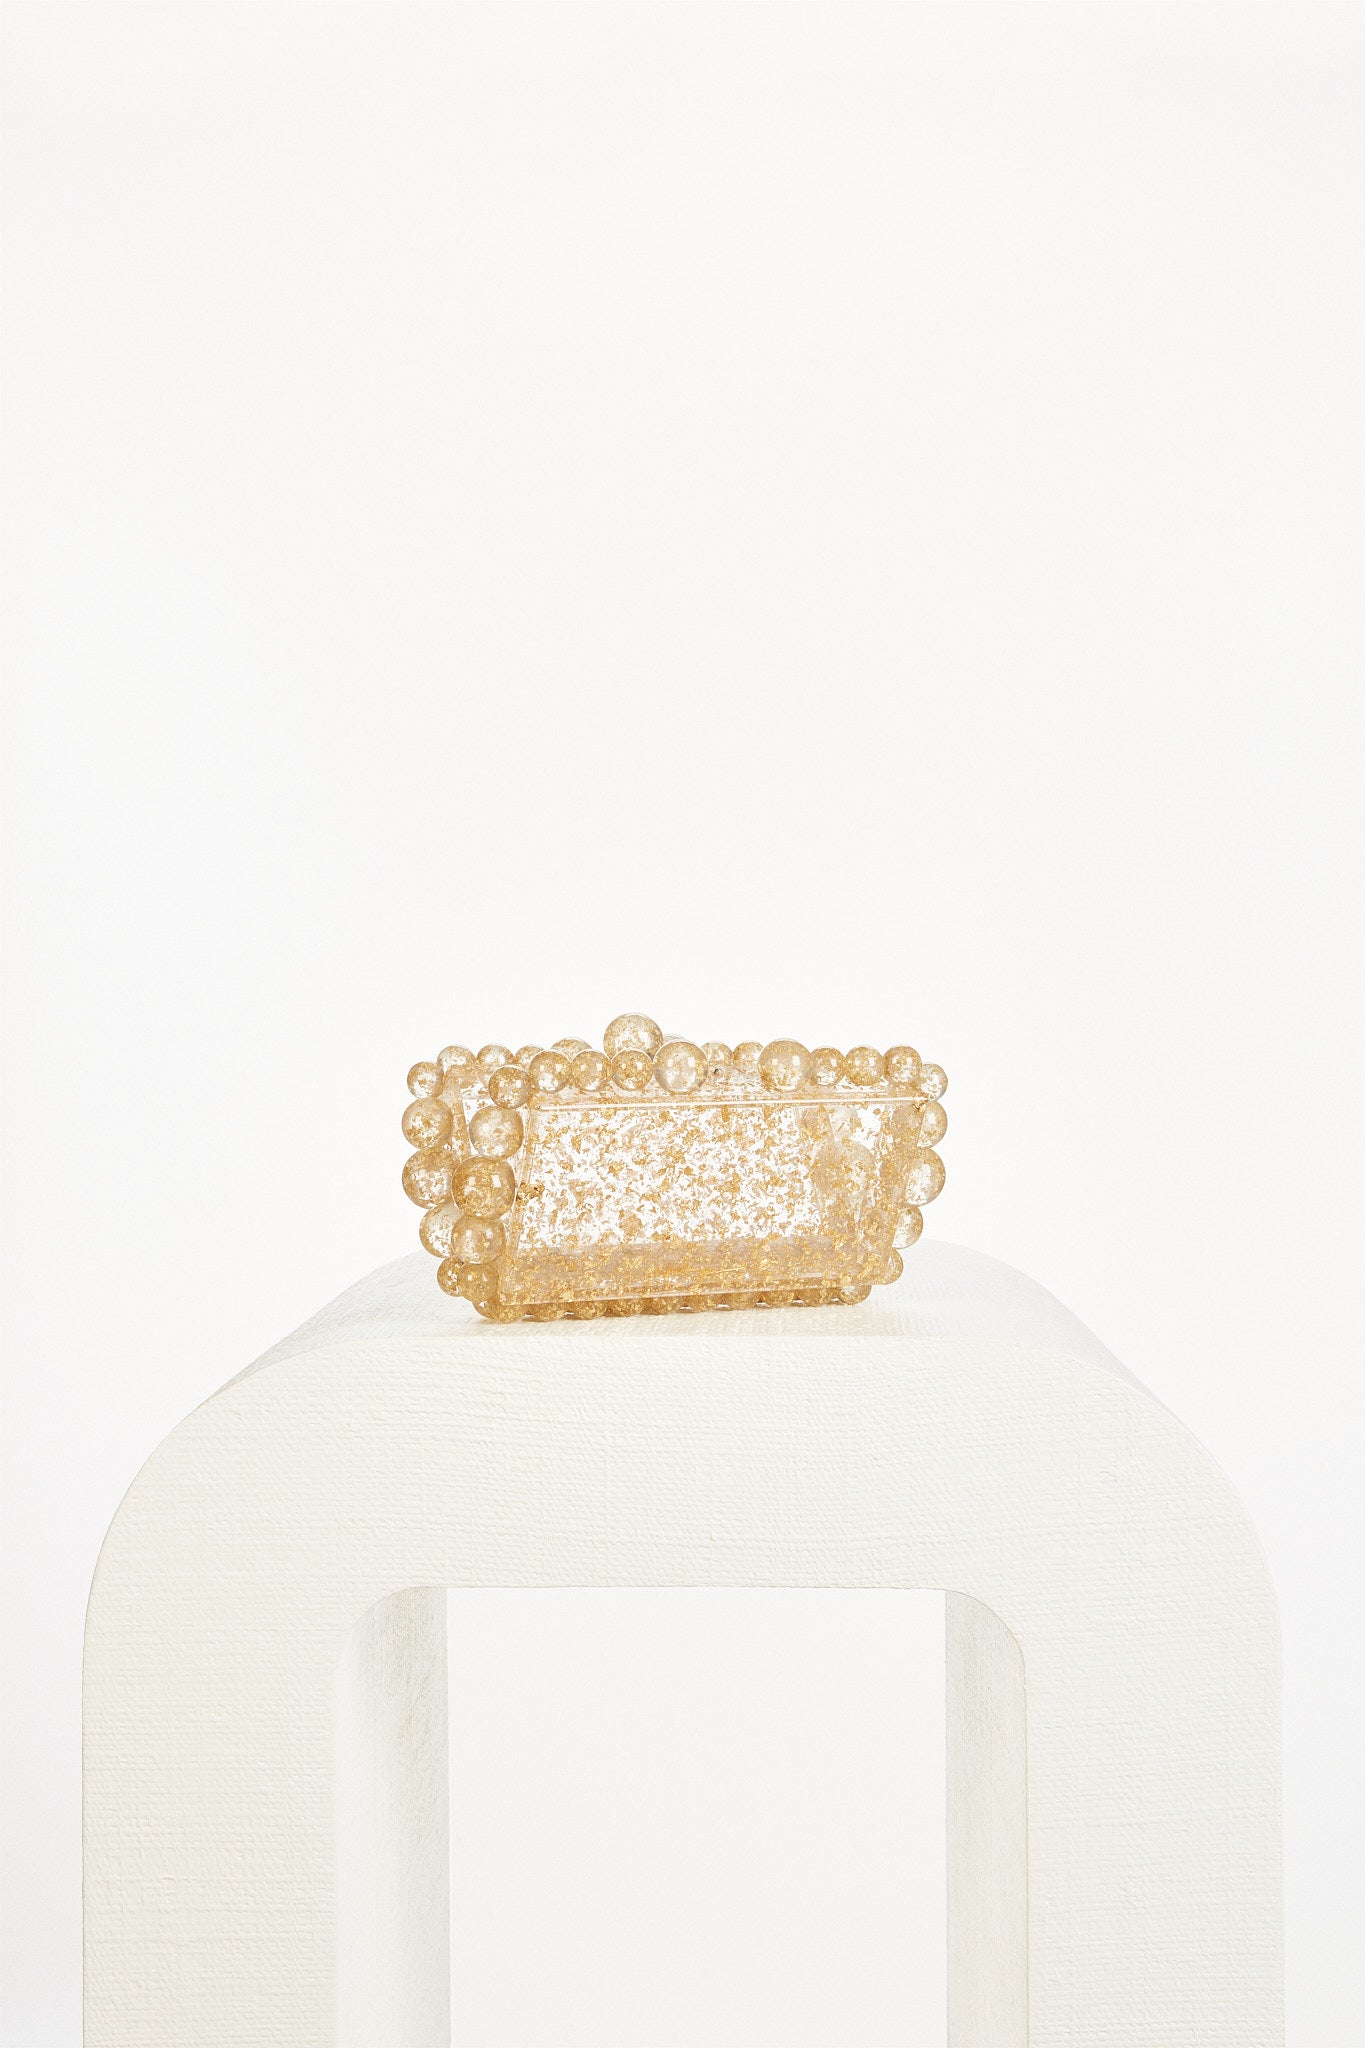 Eos Box Clutch - Gold Flake